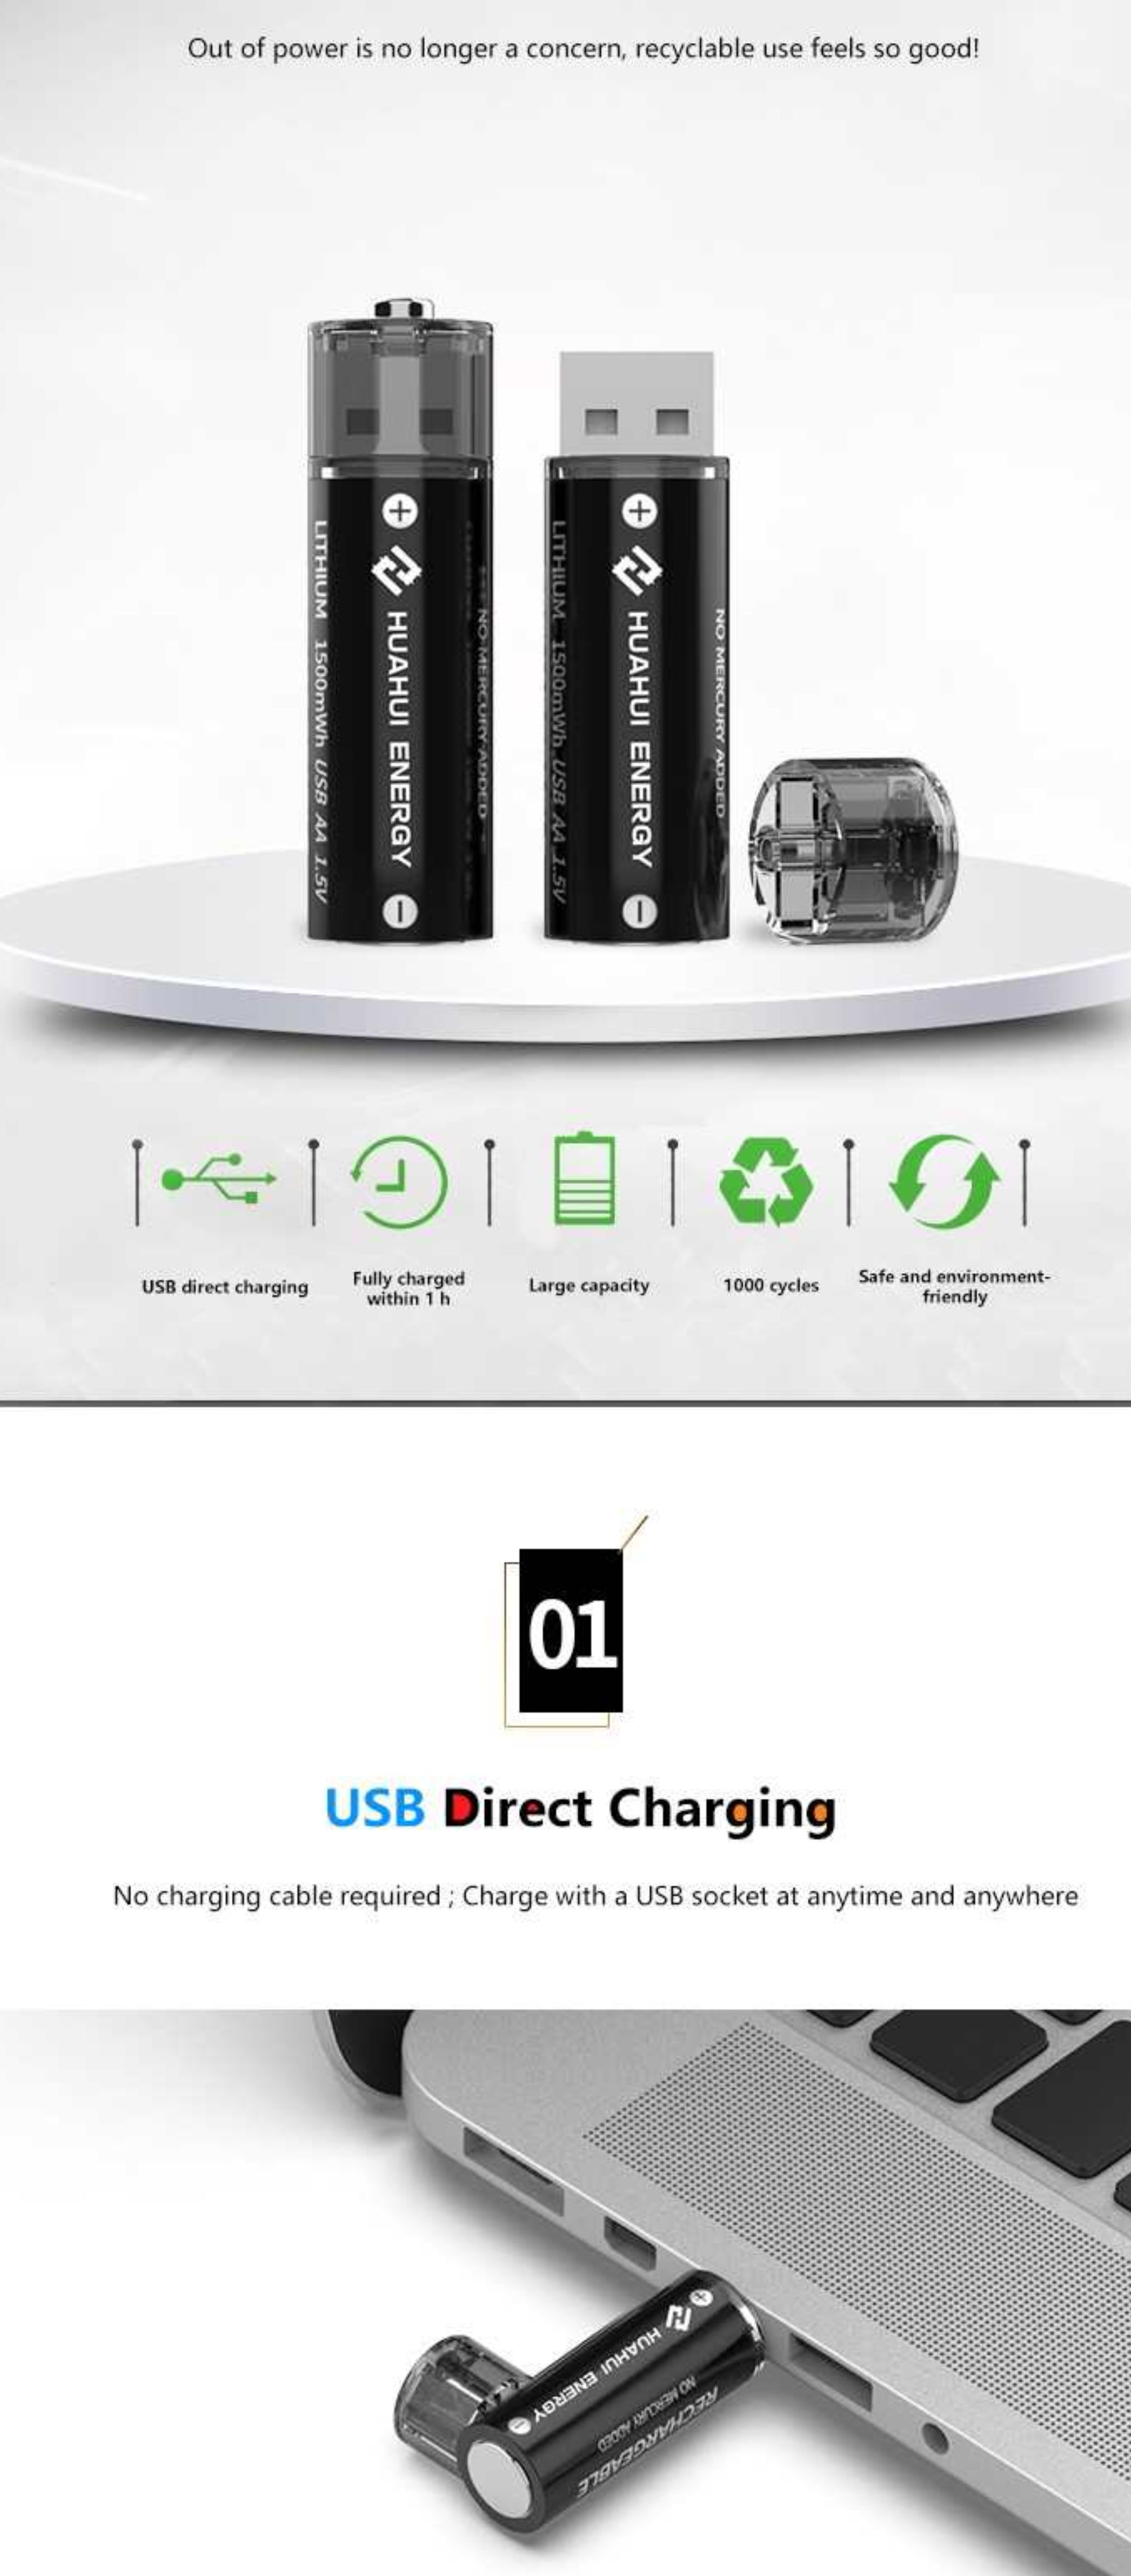 #1564 - 'Buy Now I HUAHUI Two AA USB Rechargeable Lithium 1500mWh Battery Pack I PLE Computers' - www_ple_com_au.jpg